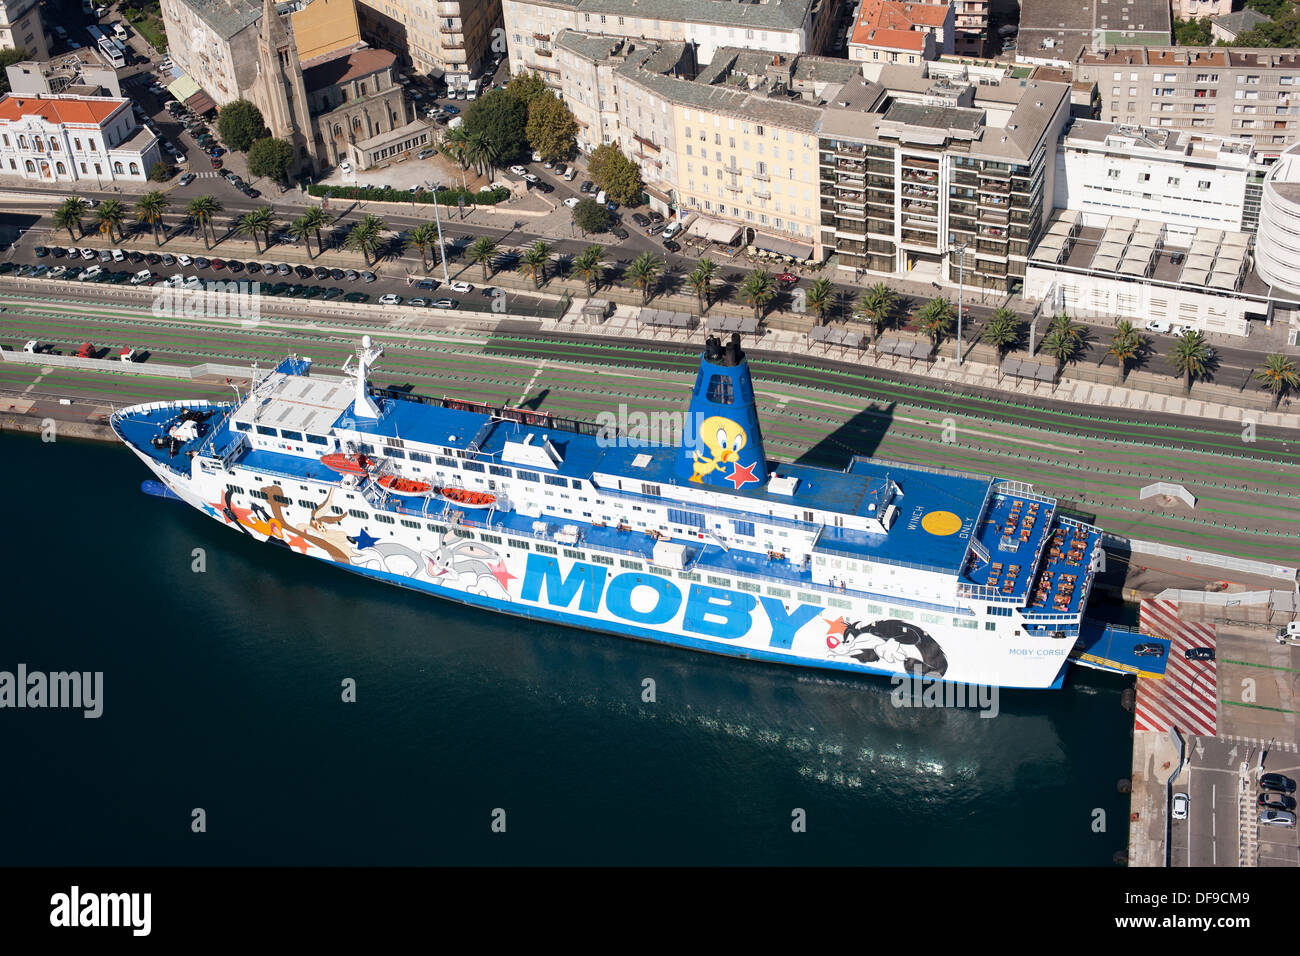 FERRYBOAT BEING LOADED (aerial view). Saint-Nicolas Port, Bastia, Corsica, France. - Stock Image